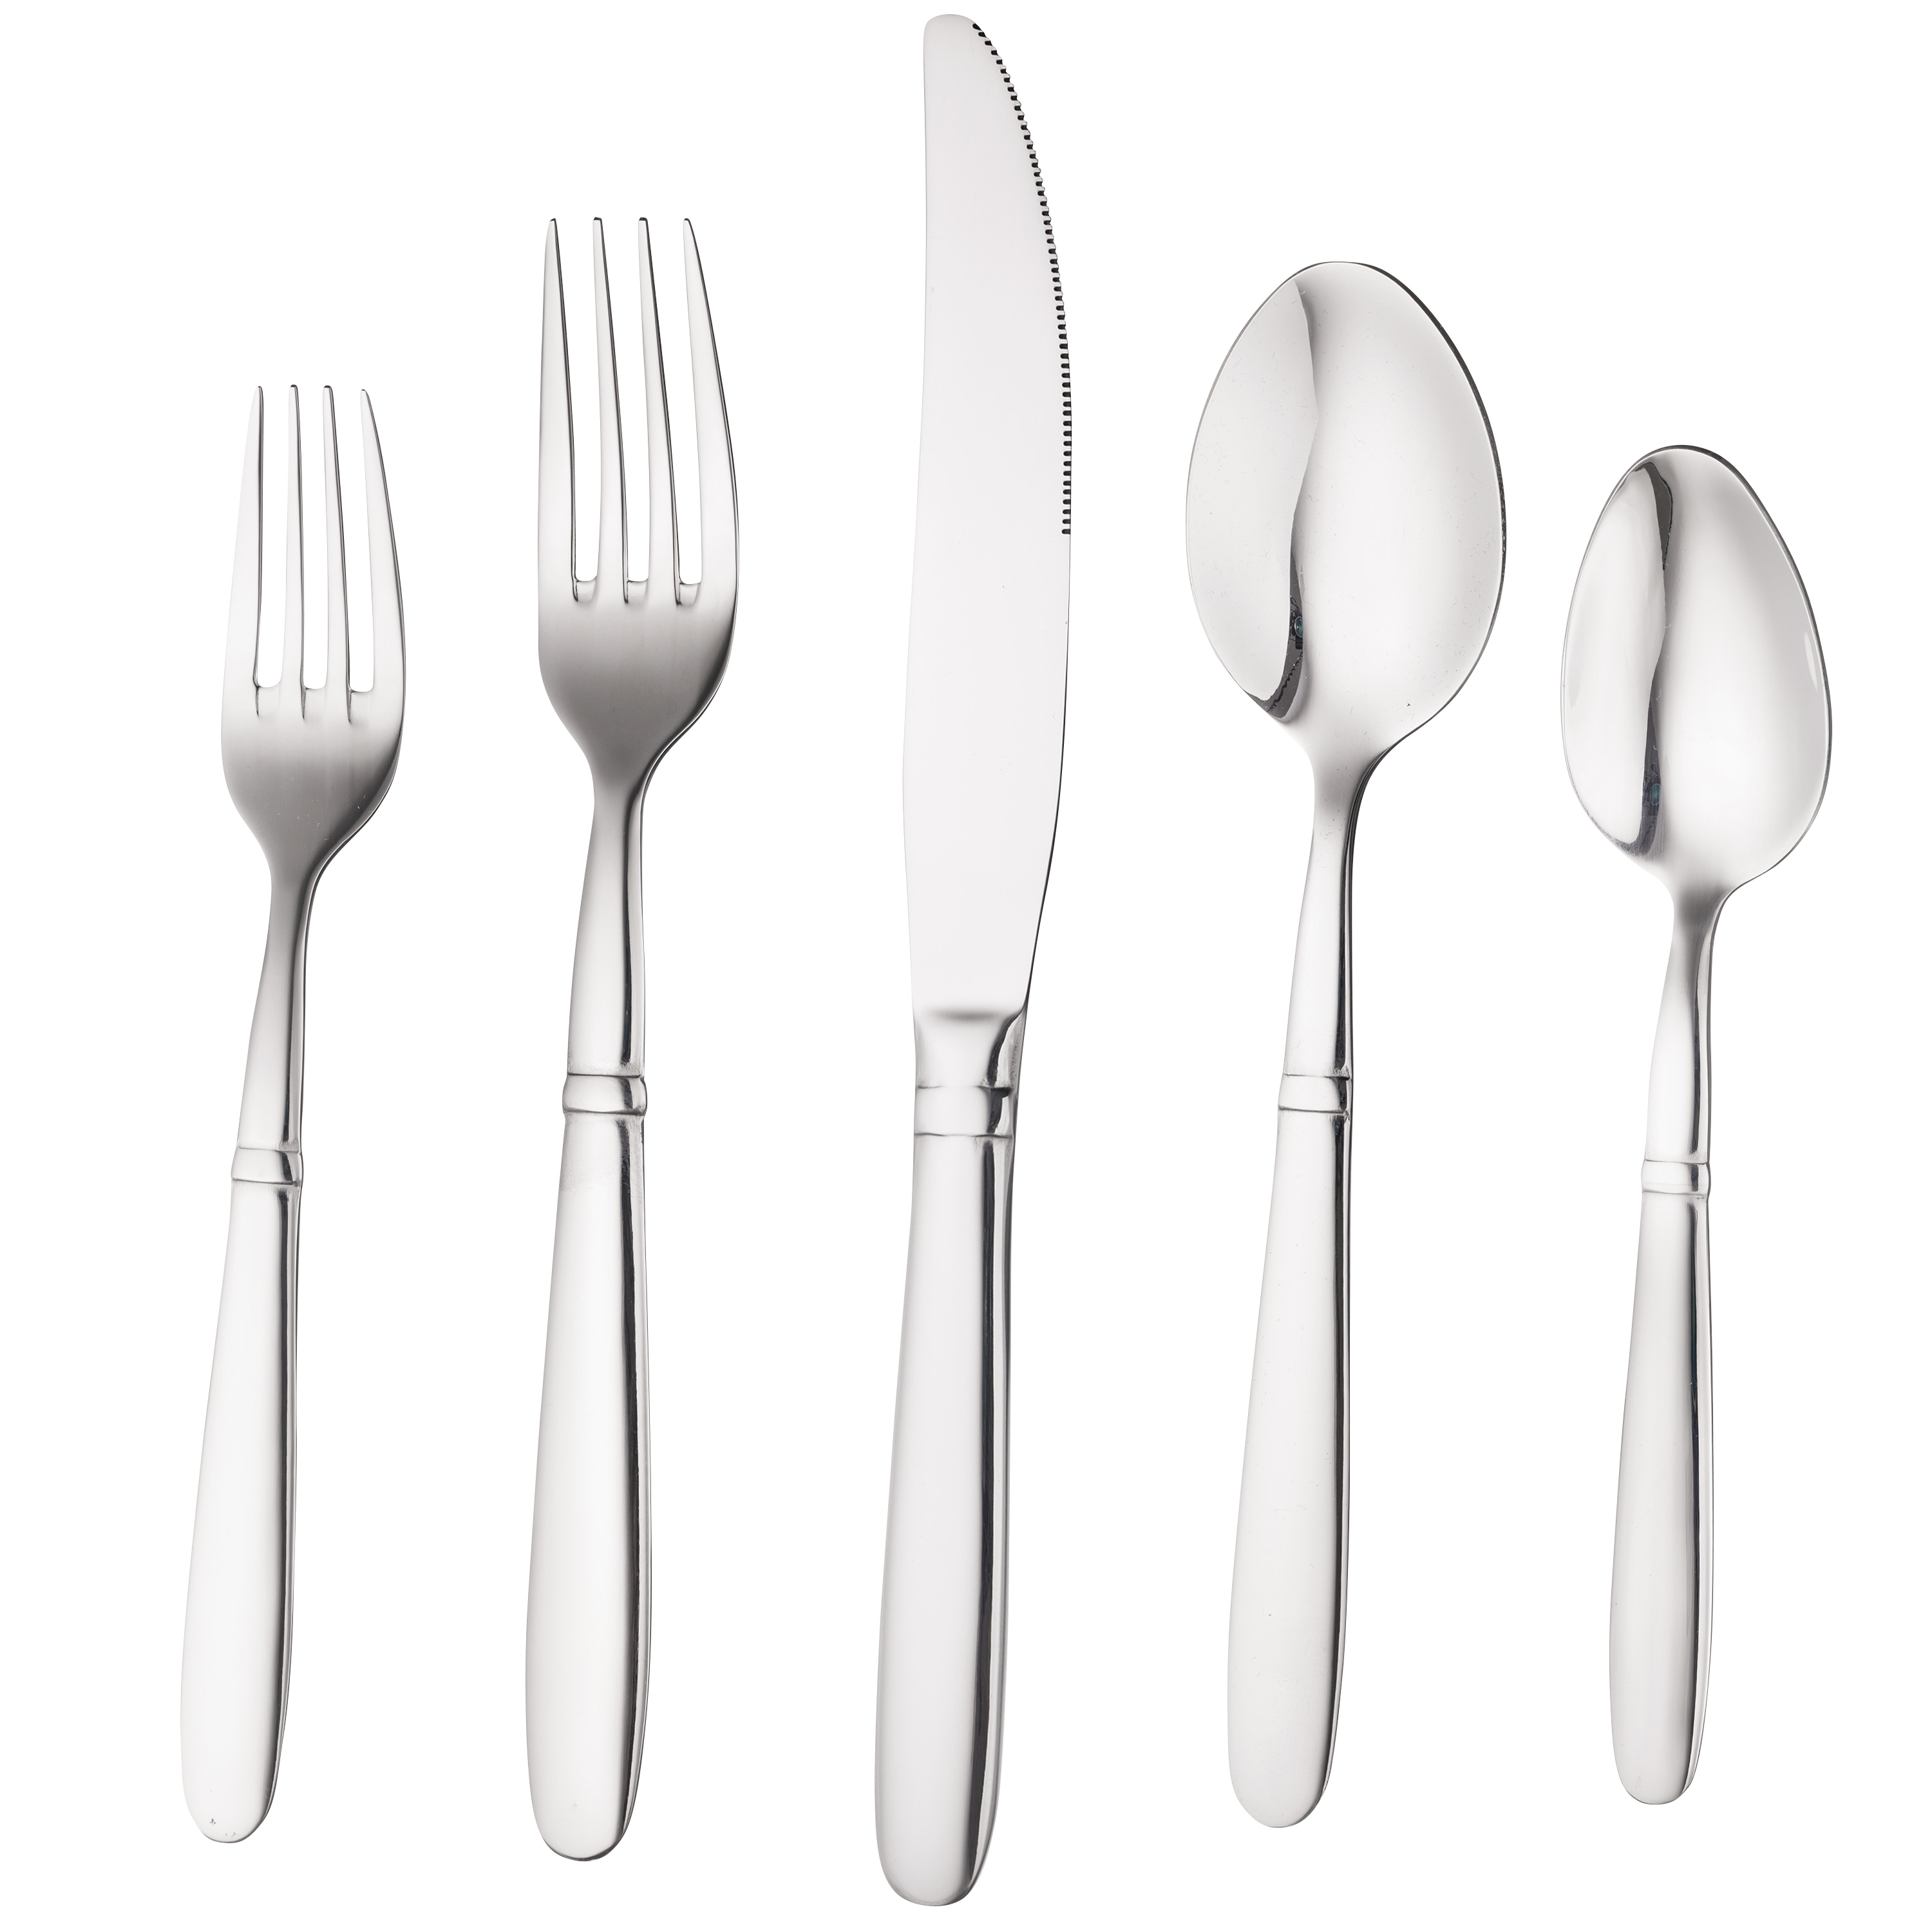 Bruntmor, CRUX Sterling Quality Silverware Royal 20 Piece Flatware Cutlery Set, 18 10 Stainless Steel, Service... by